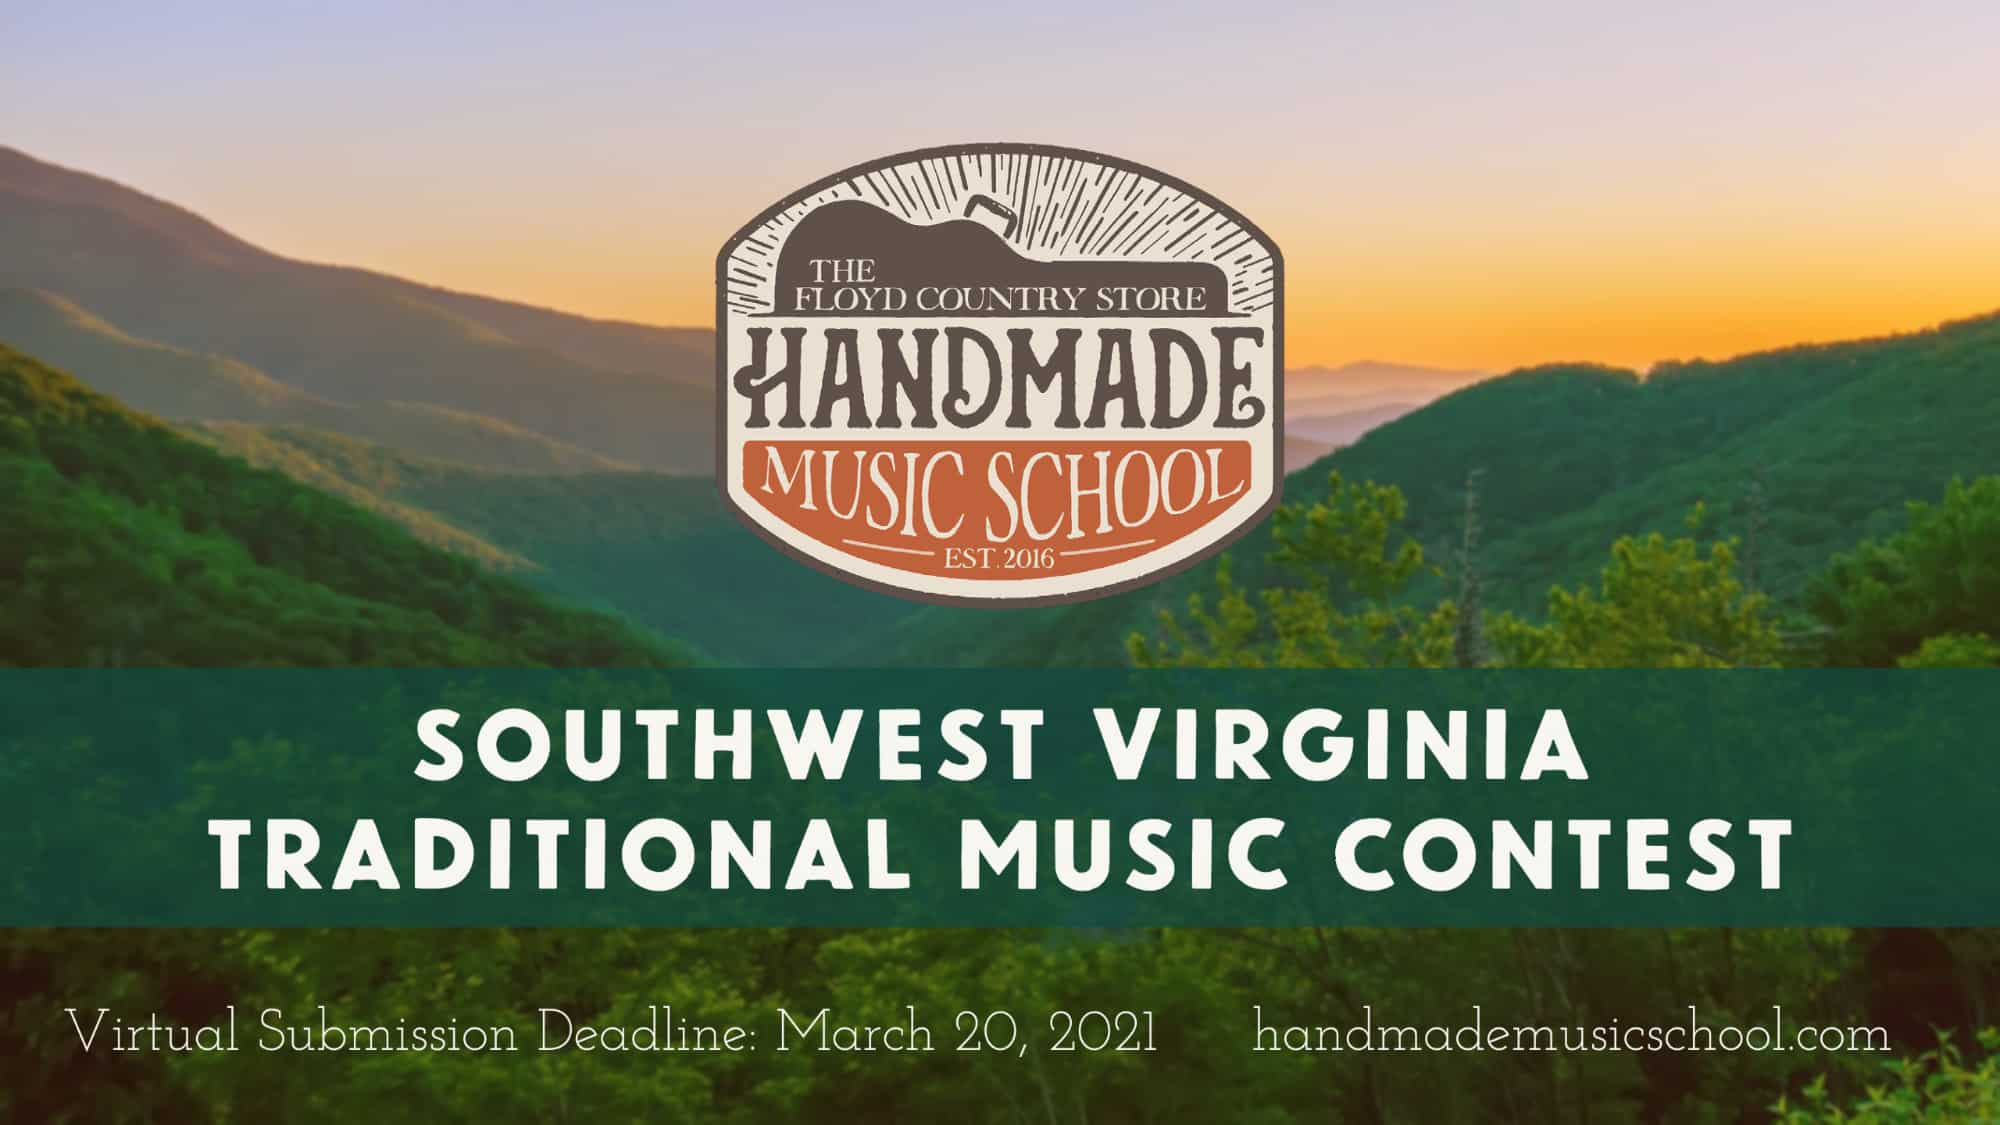 2021 Southwest Virginia Traditional Music Contest